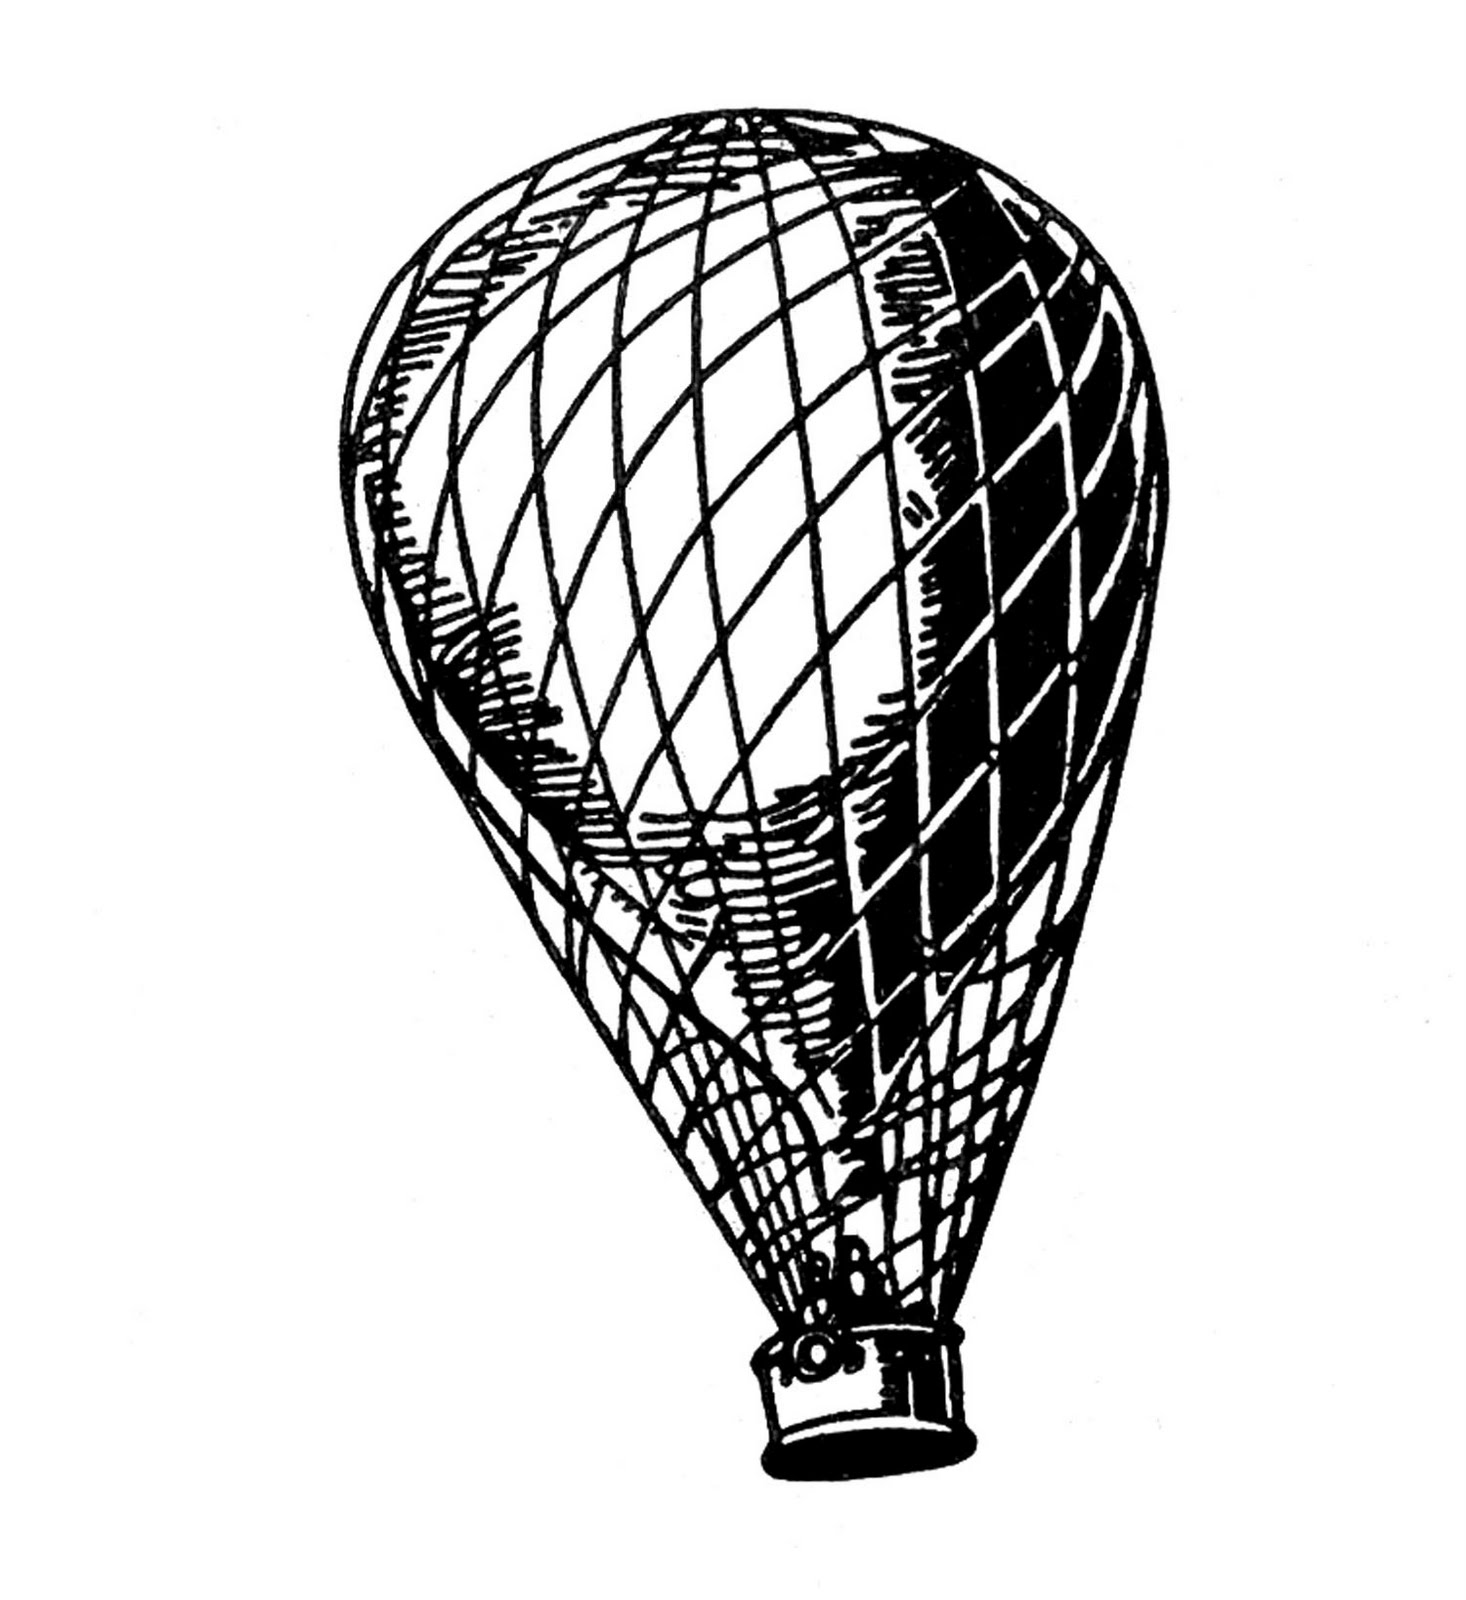 Vintage Hot Air Balloon Coloring Page | Clipart Panda - Free Clipart ...